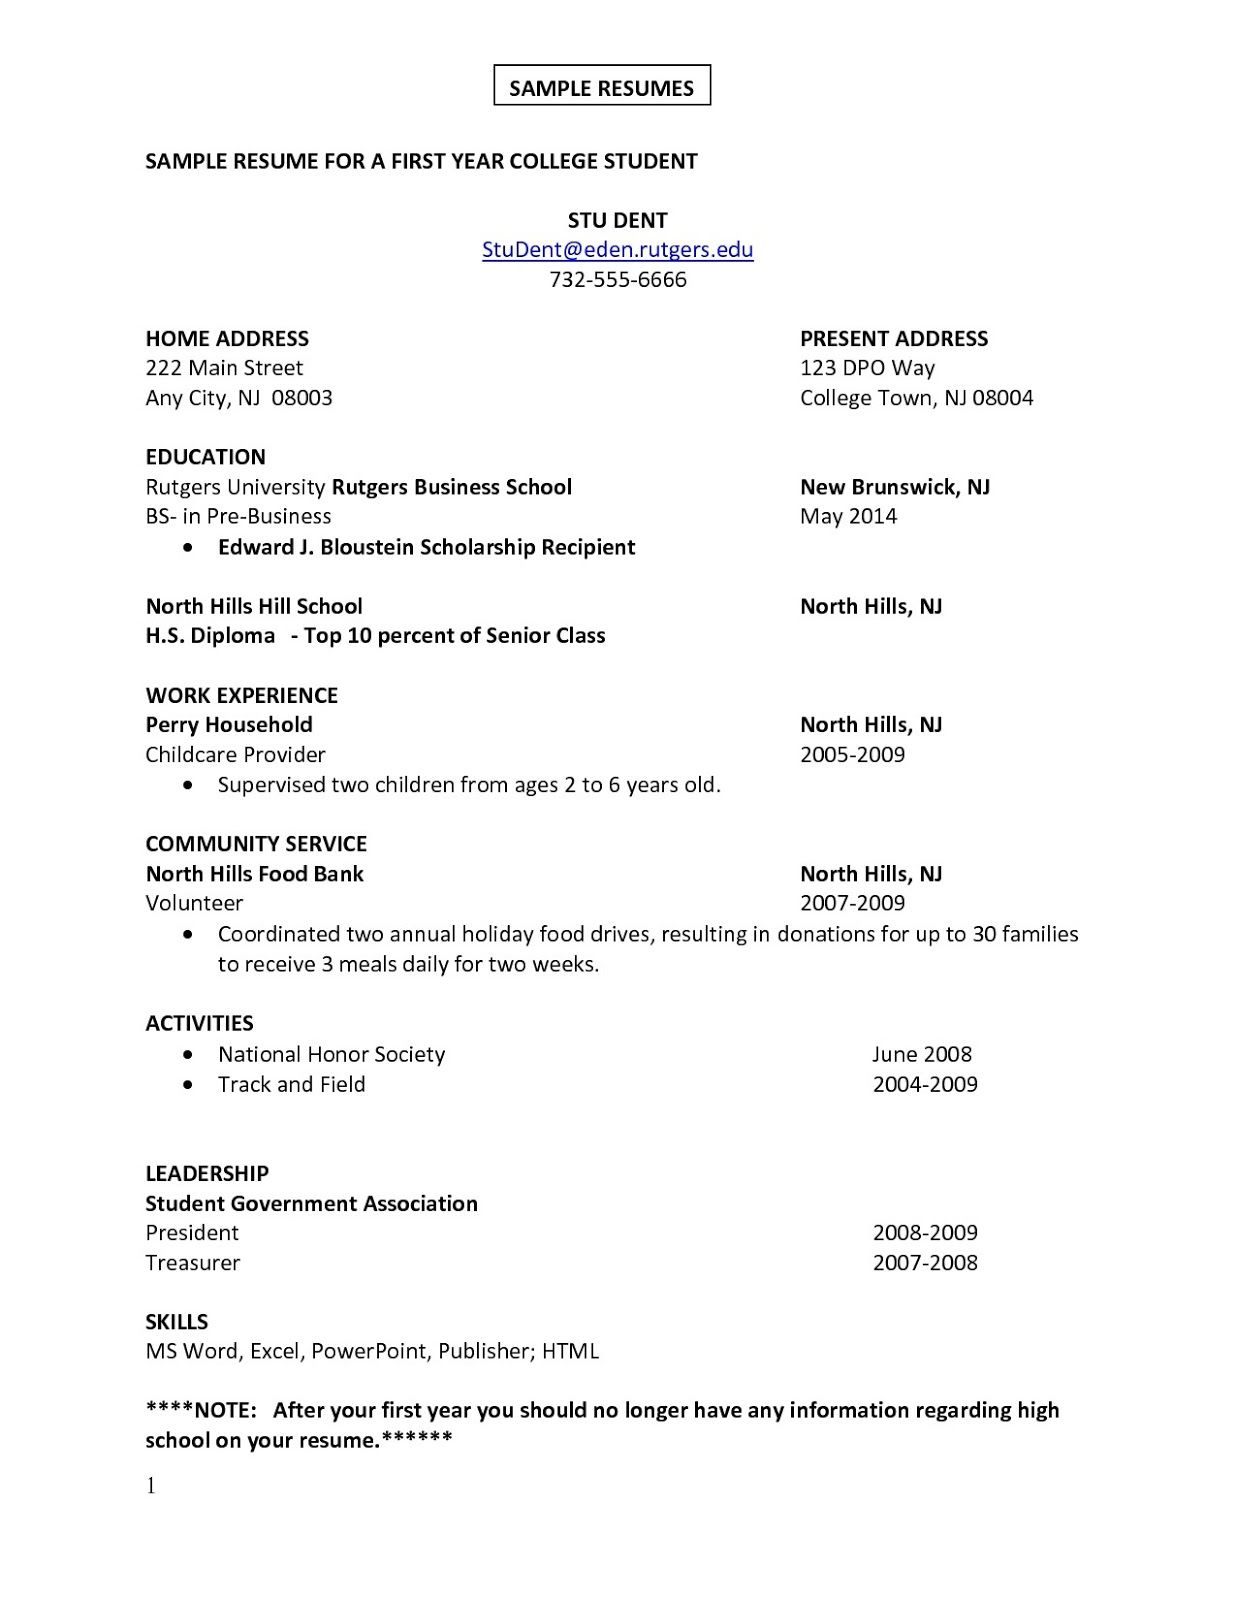 Simple Job Resume Template First Job Sample Resume  Sample Resumes  Sample Resumes